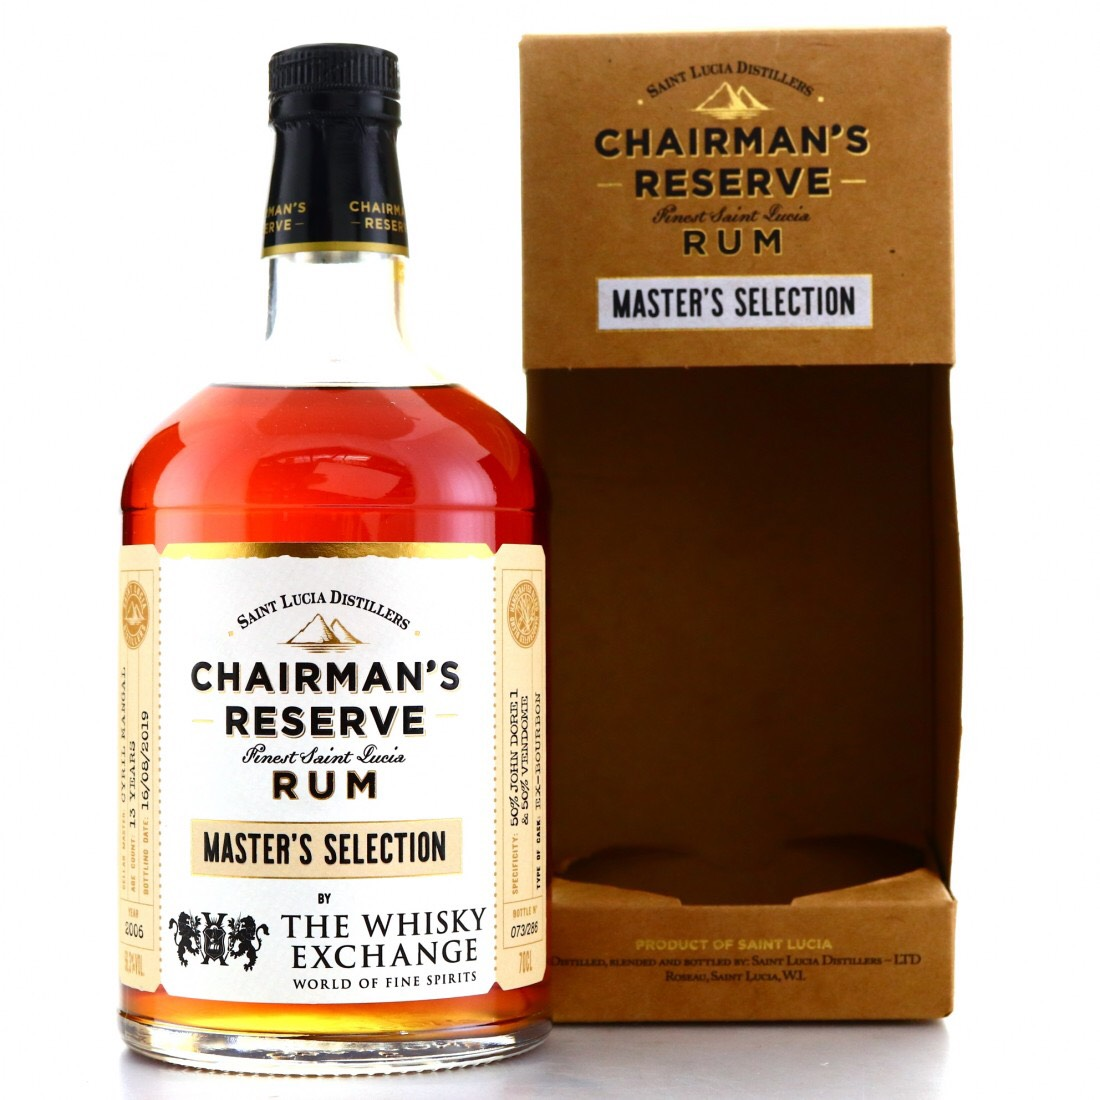 Bottle image of Chairman's Reserve Master's Selection (The Whisky Exchange)